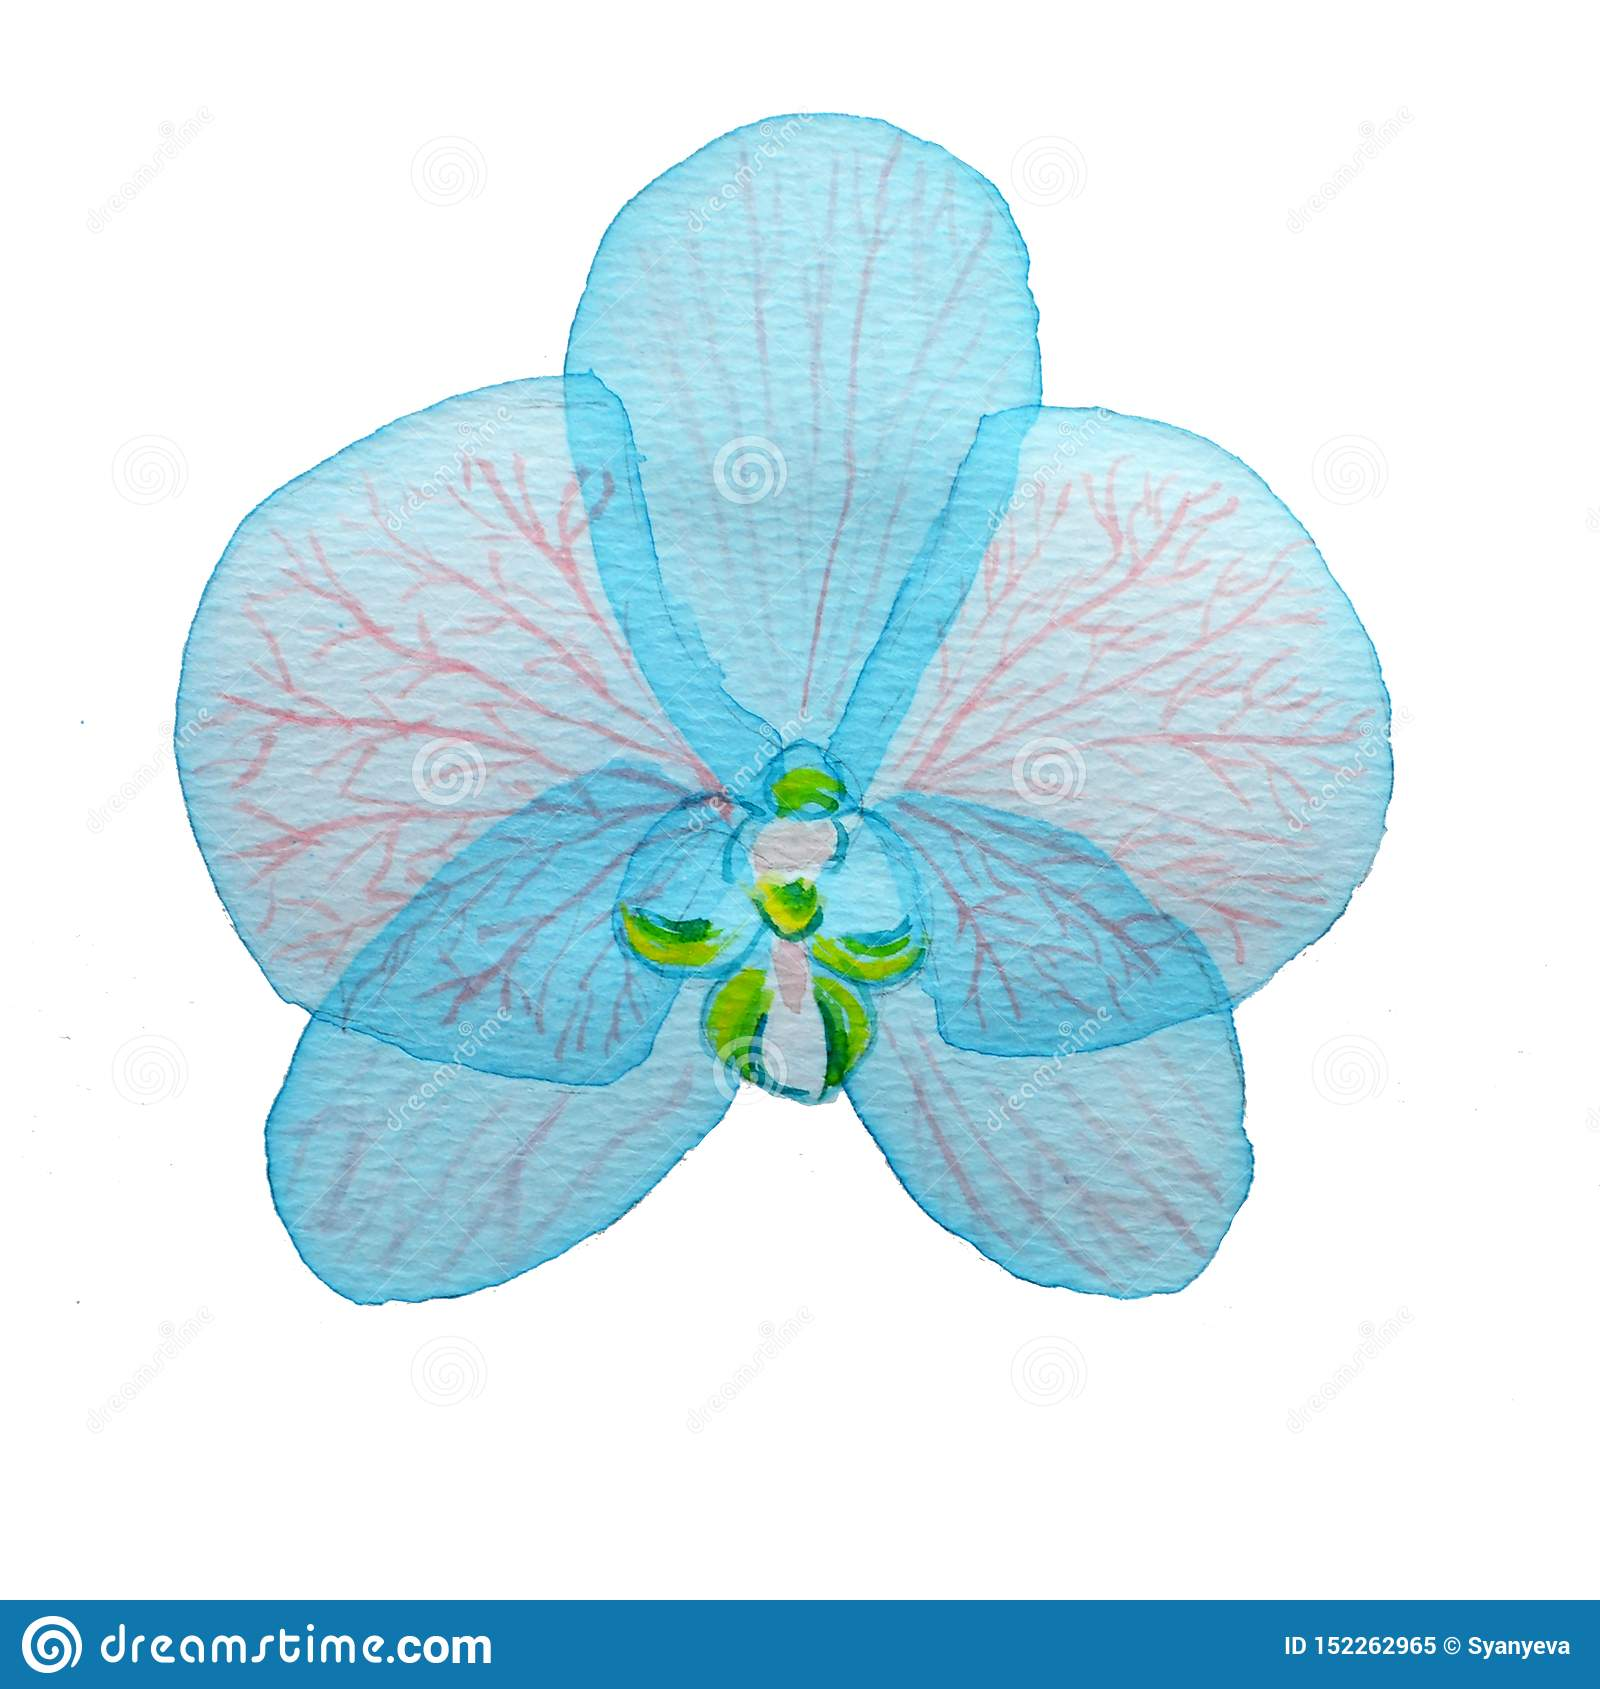 Watercolor blue transparent layered pink Flower orchid on white background